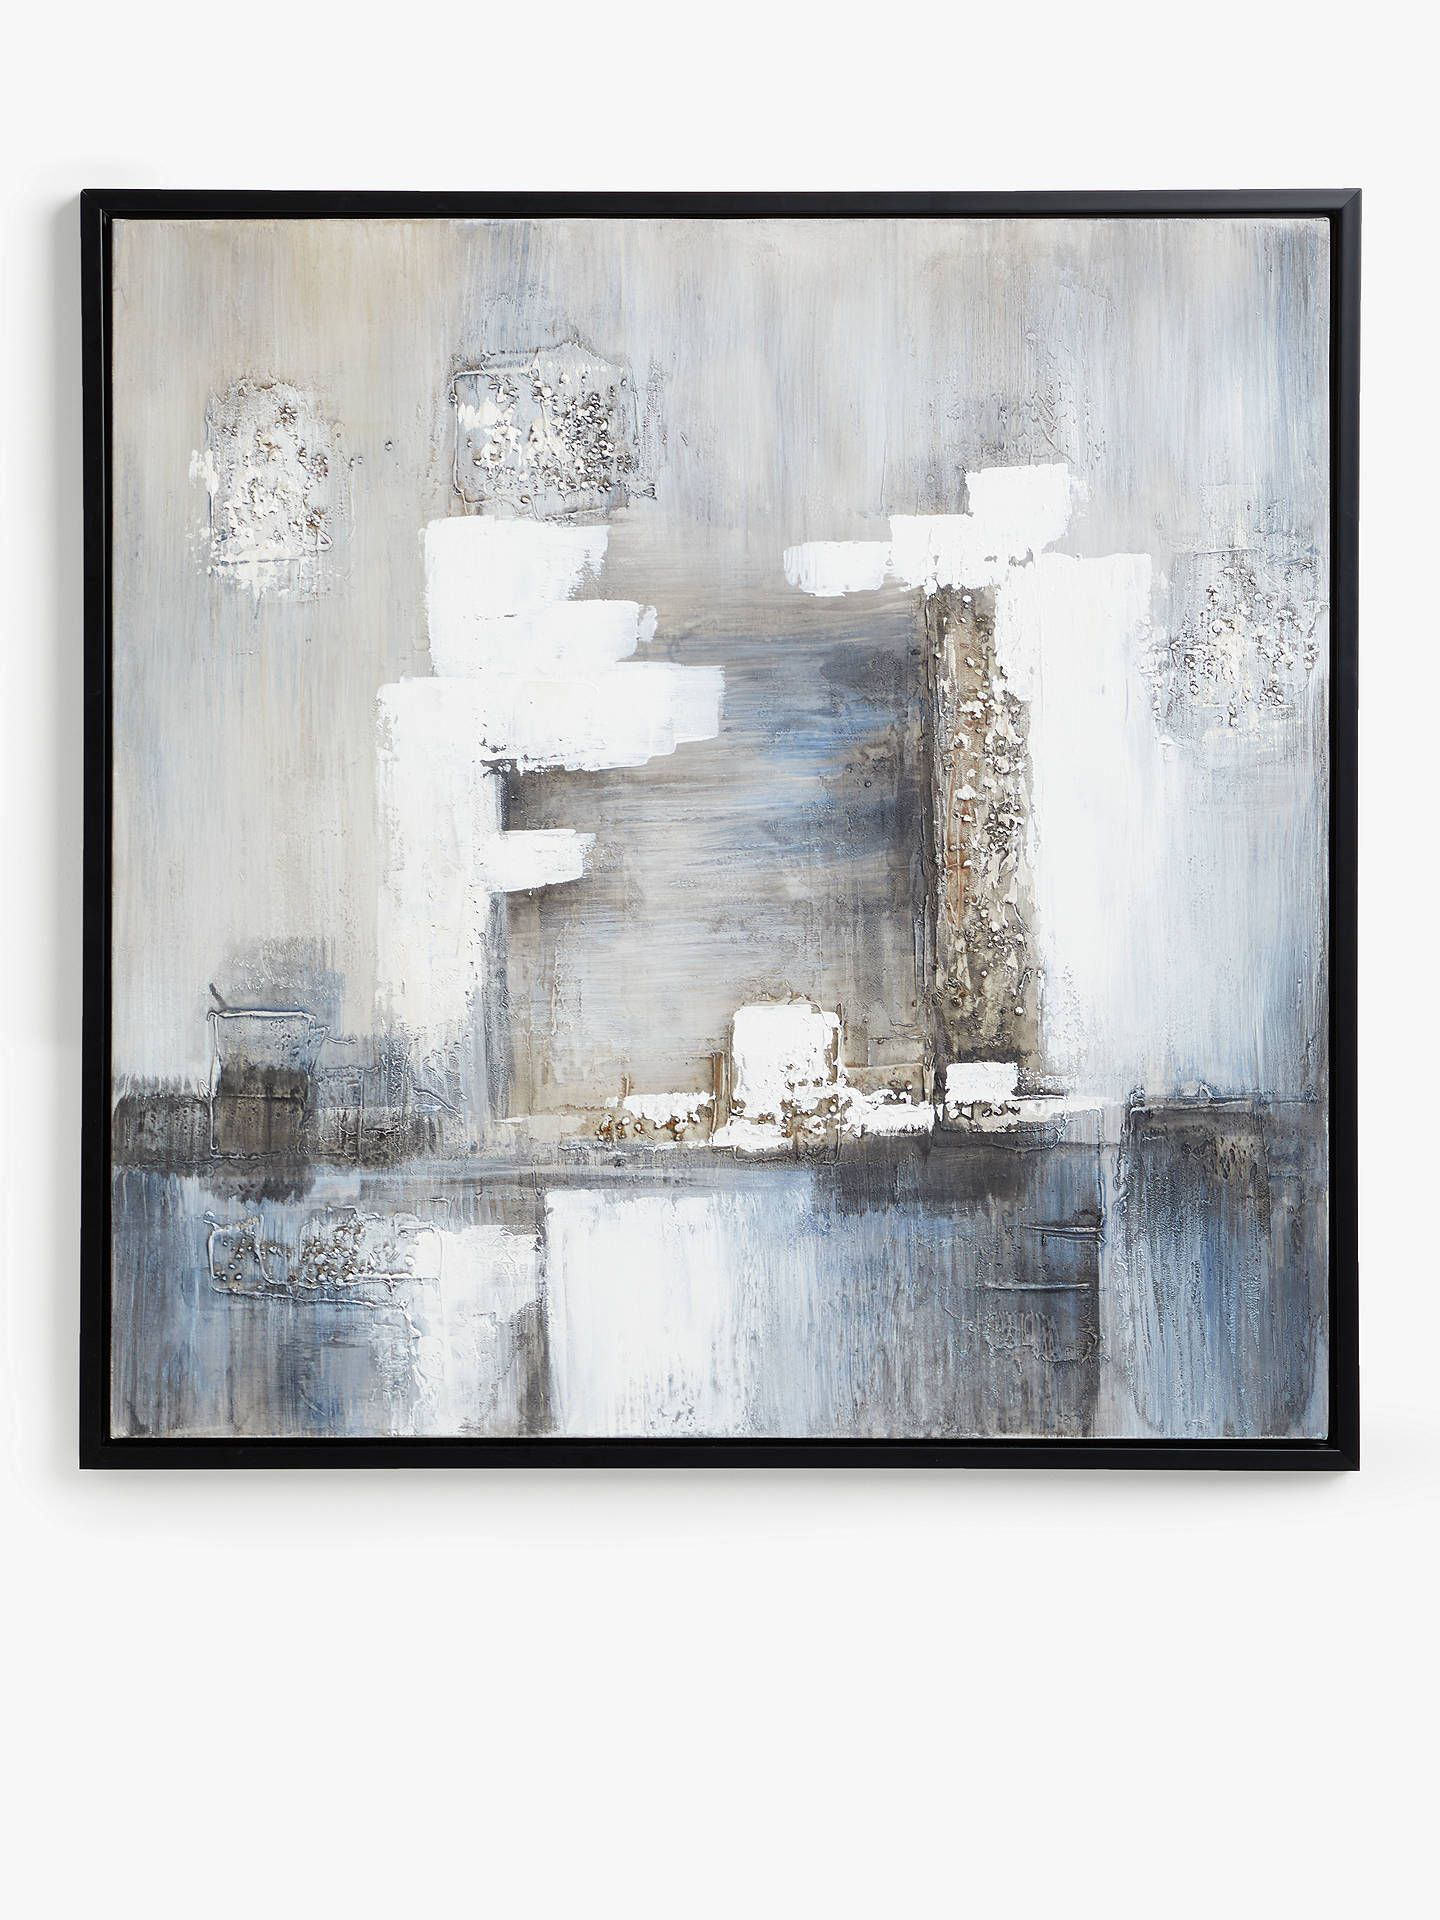 Tempest Hand Painted Monochrome Abstract Framed Canvas 100 X 100cm Black Multi Canvas Frame Hand Painted Abstract